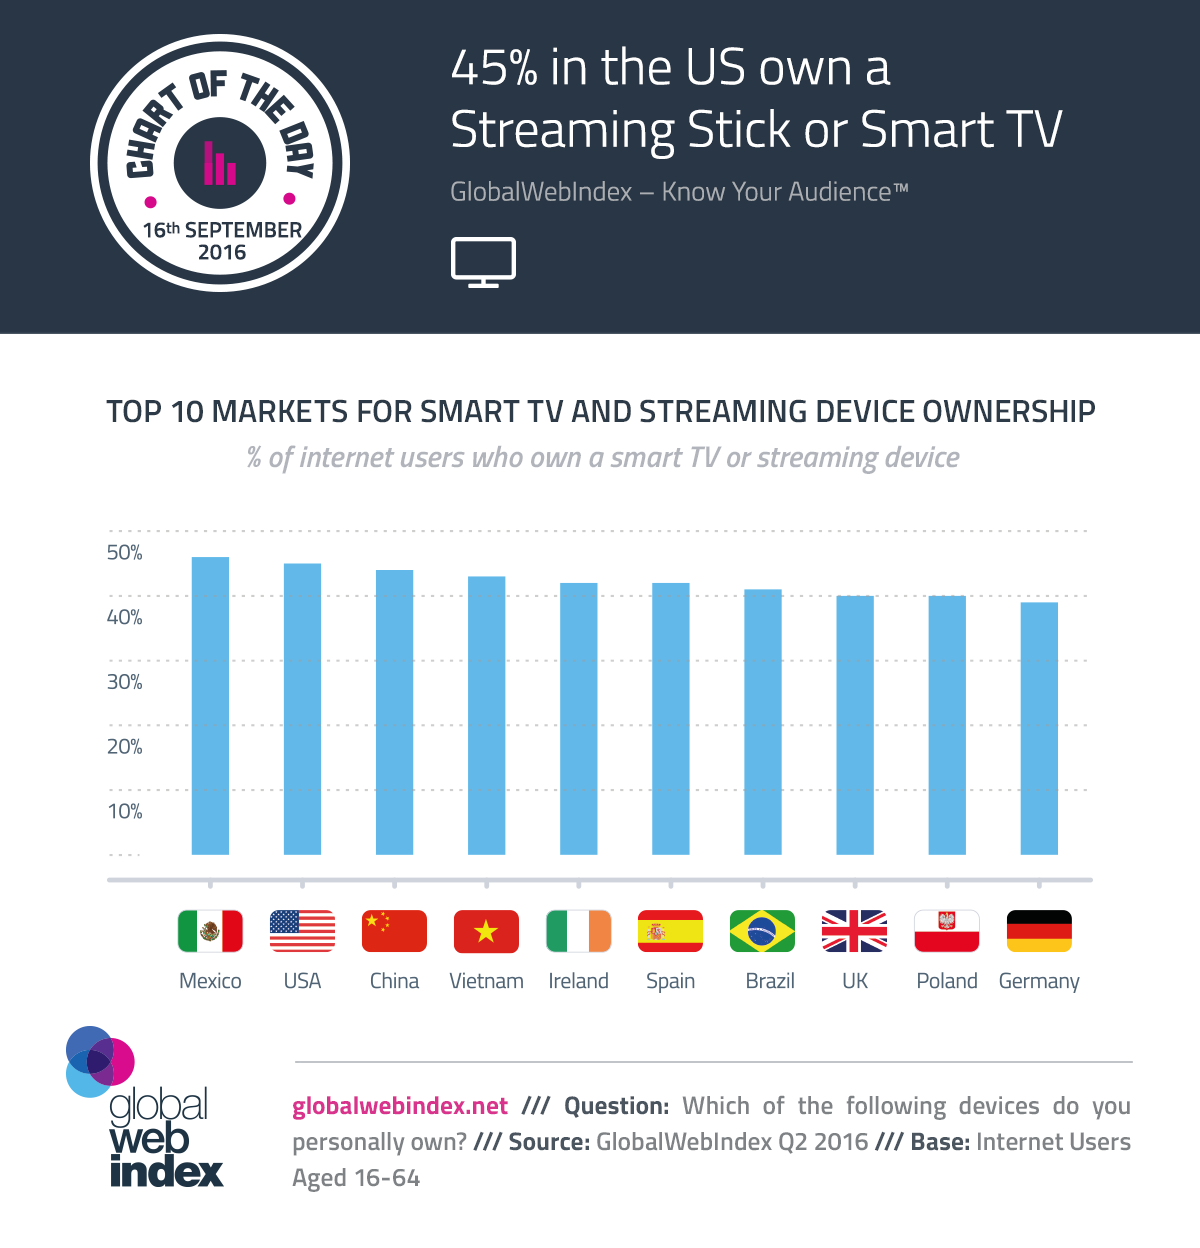 45% in the US Own a Streaming Stick or Smart TV